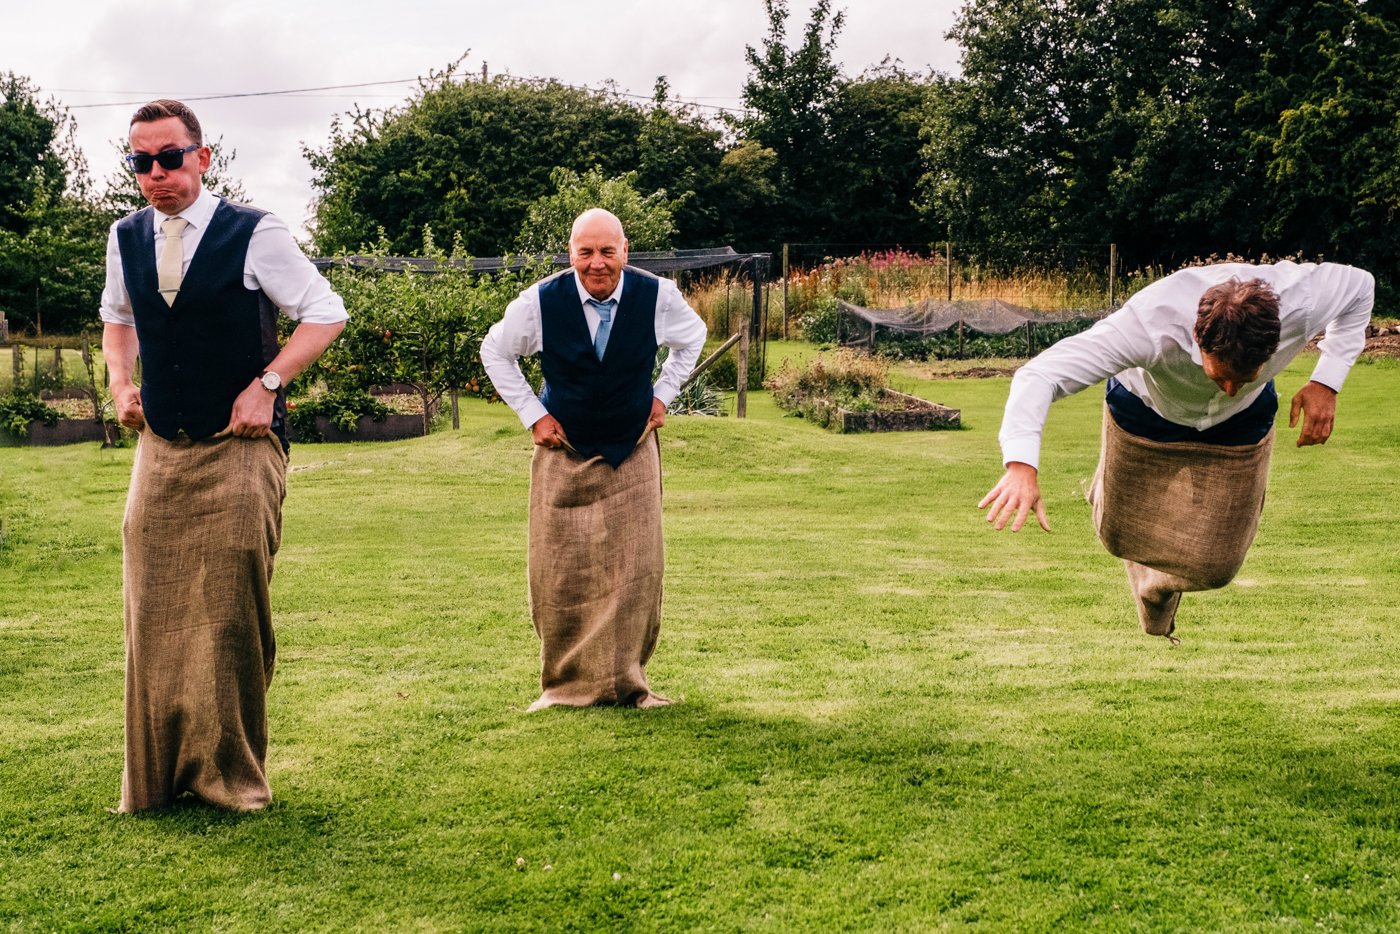 Image of wedding guests during a sack race